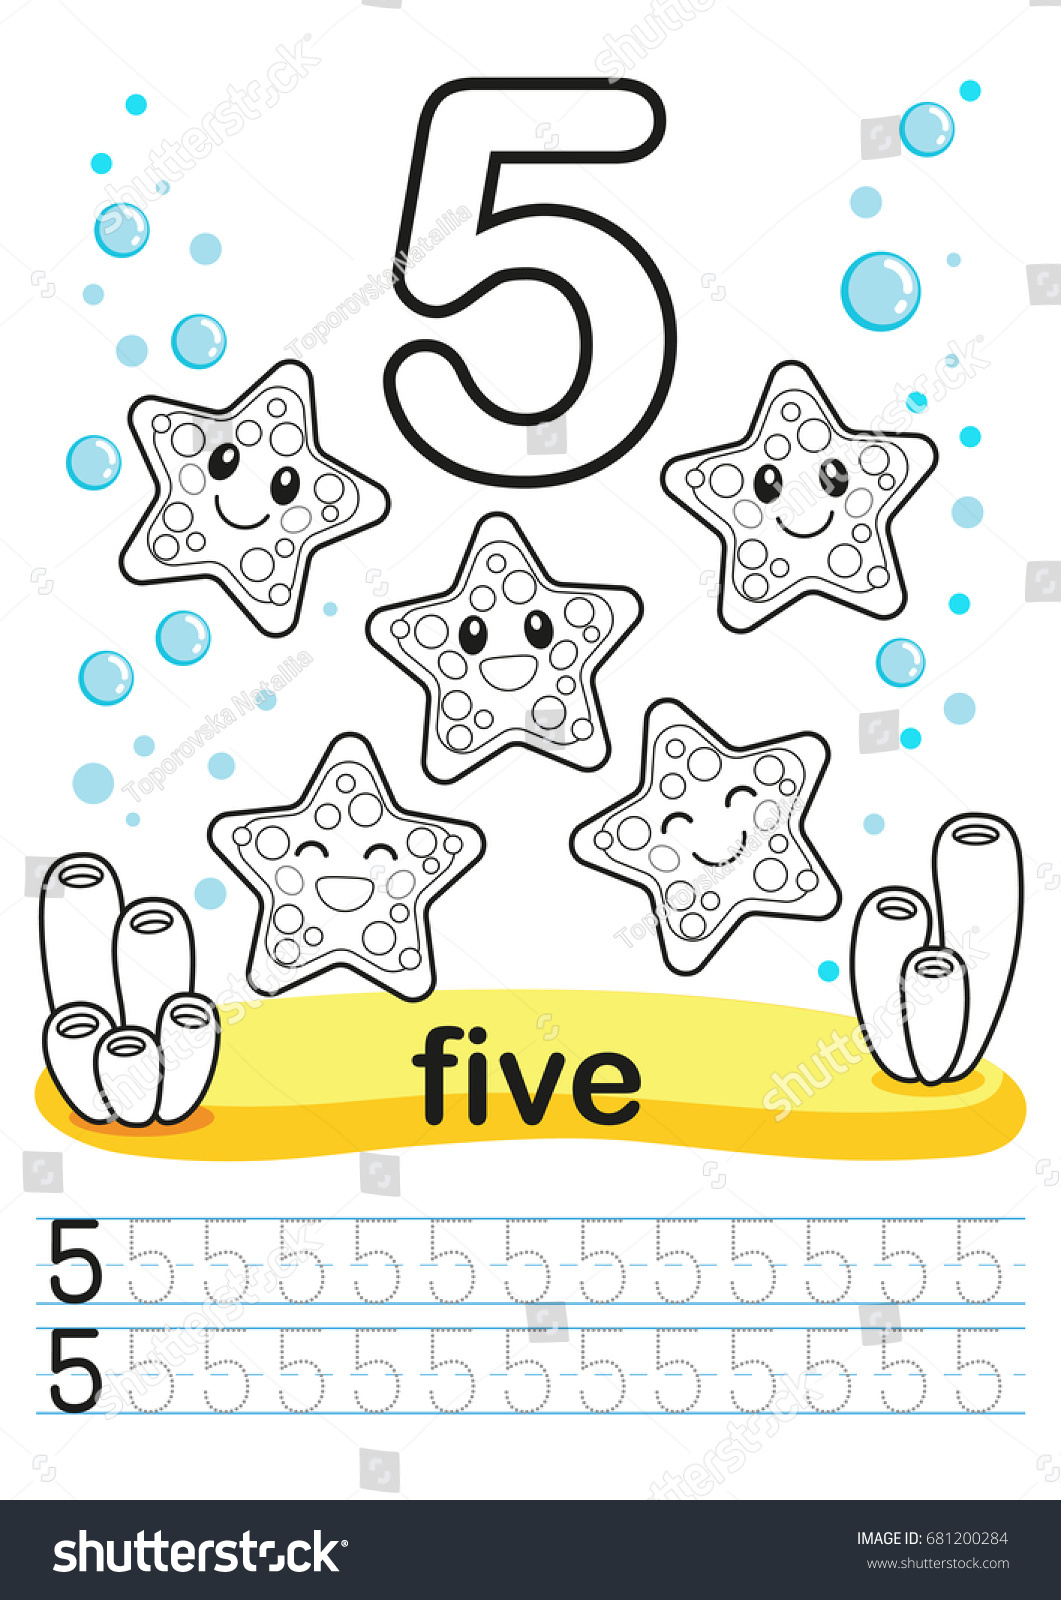 Coloring Printable Worksheet Kindergarten Preschool We Stock Vector